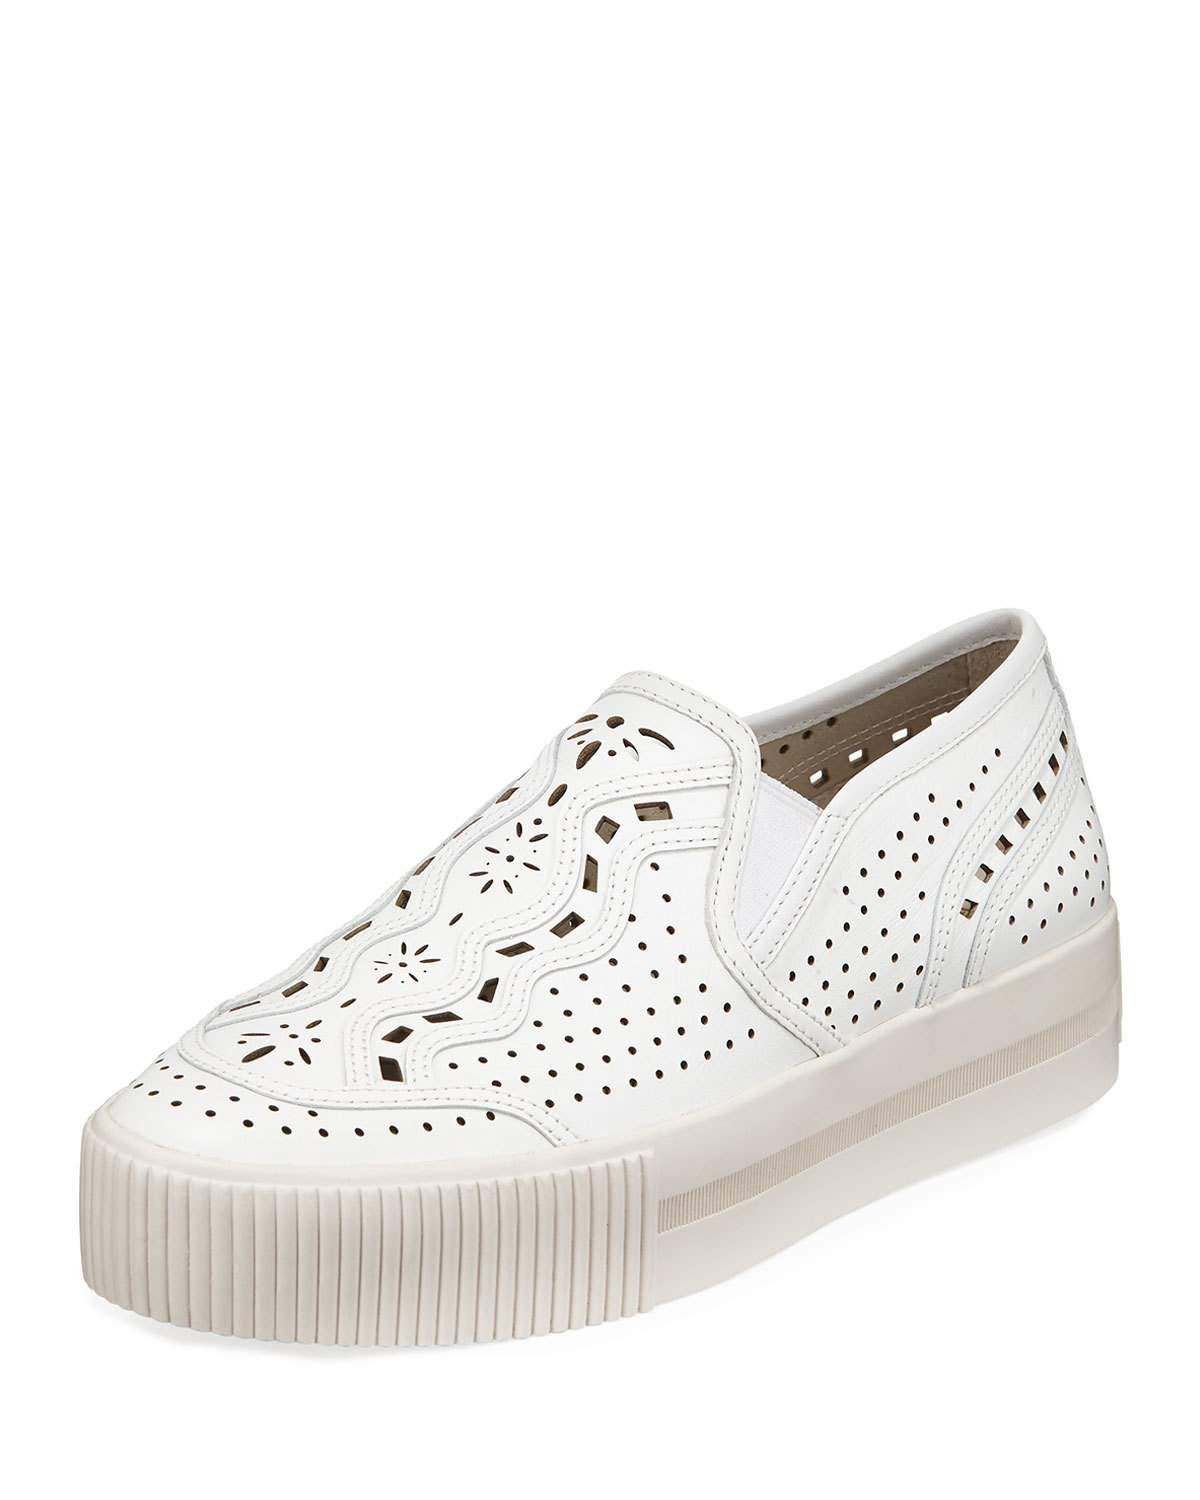 Ash Kingston Leather Sneakers in White